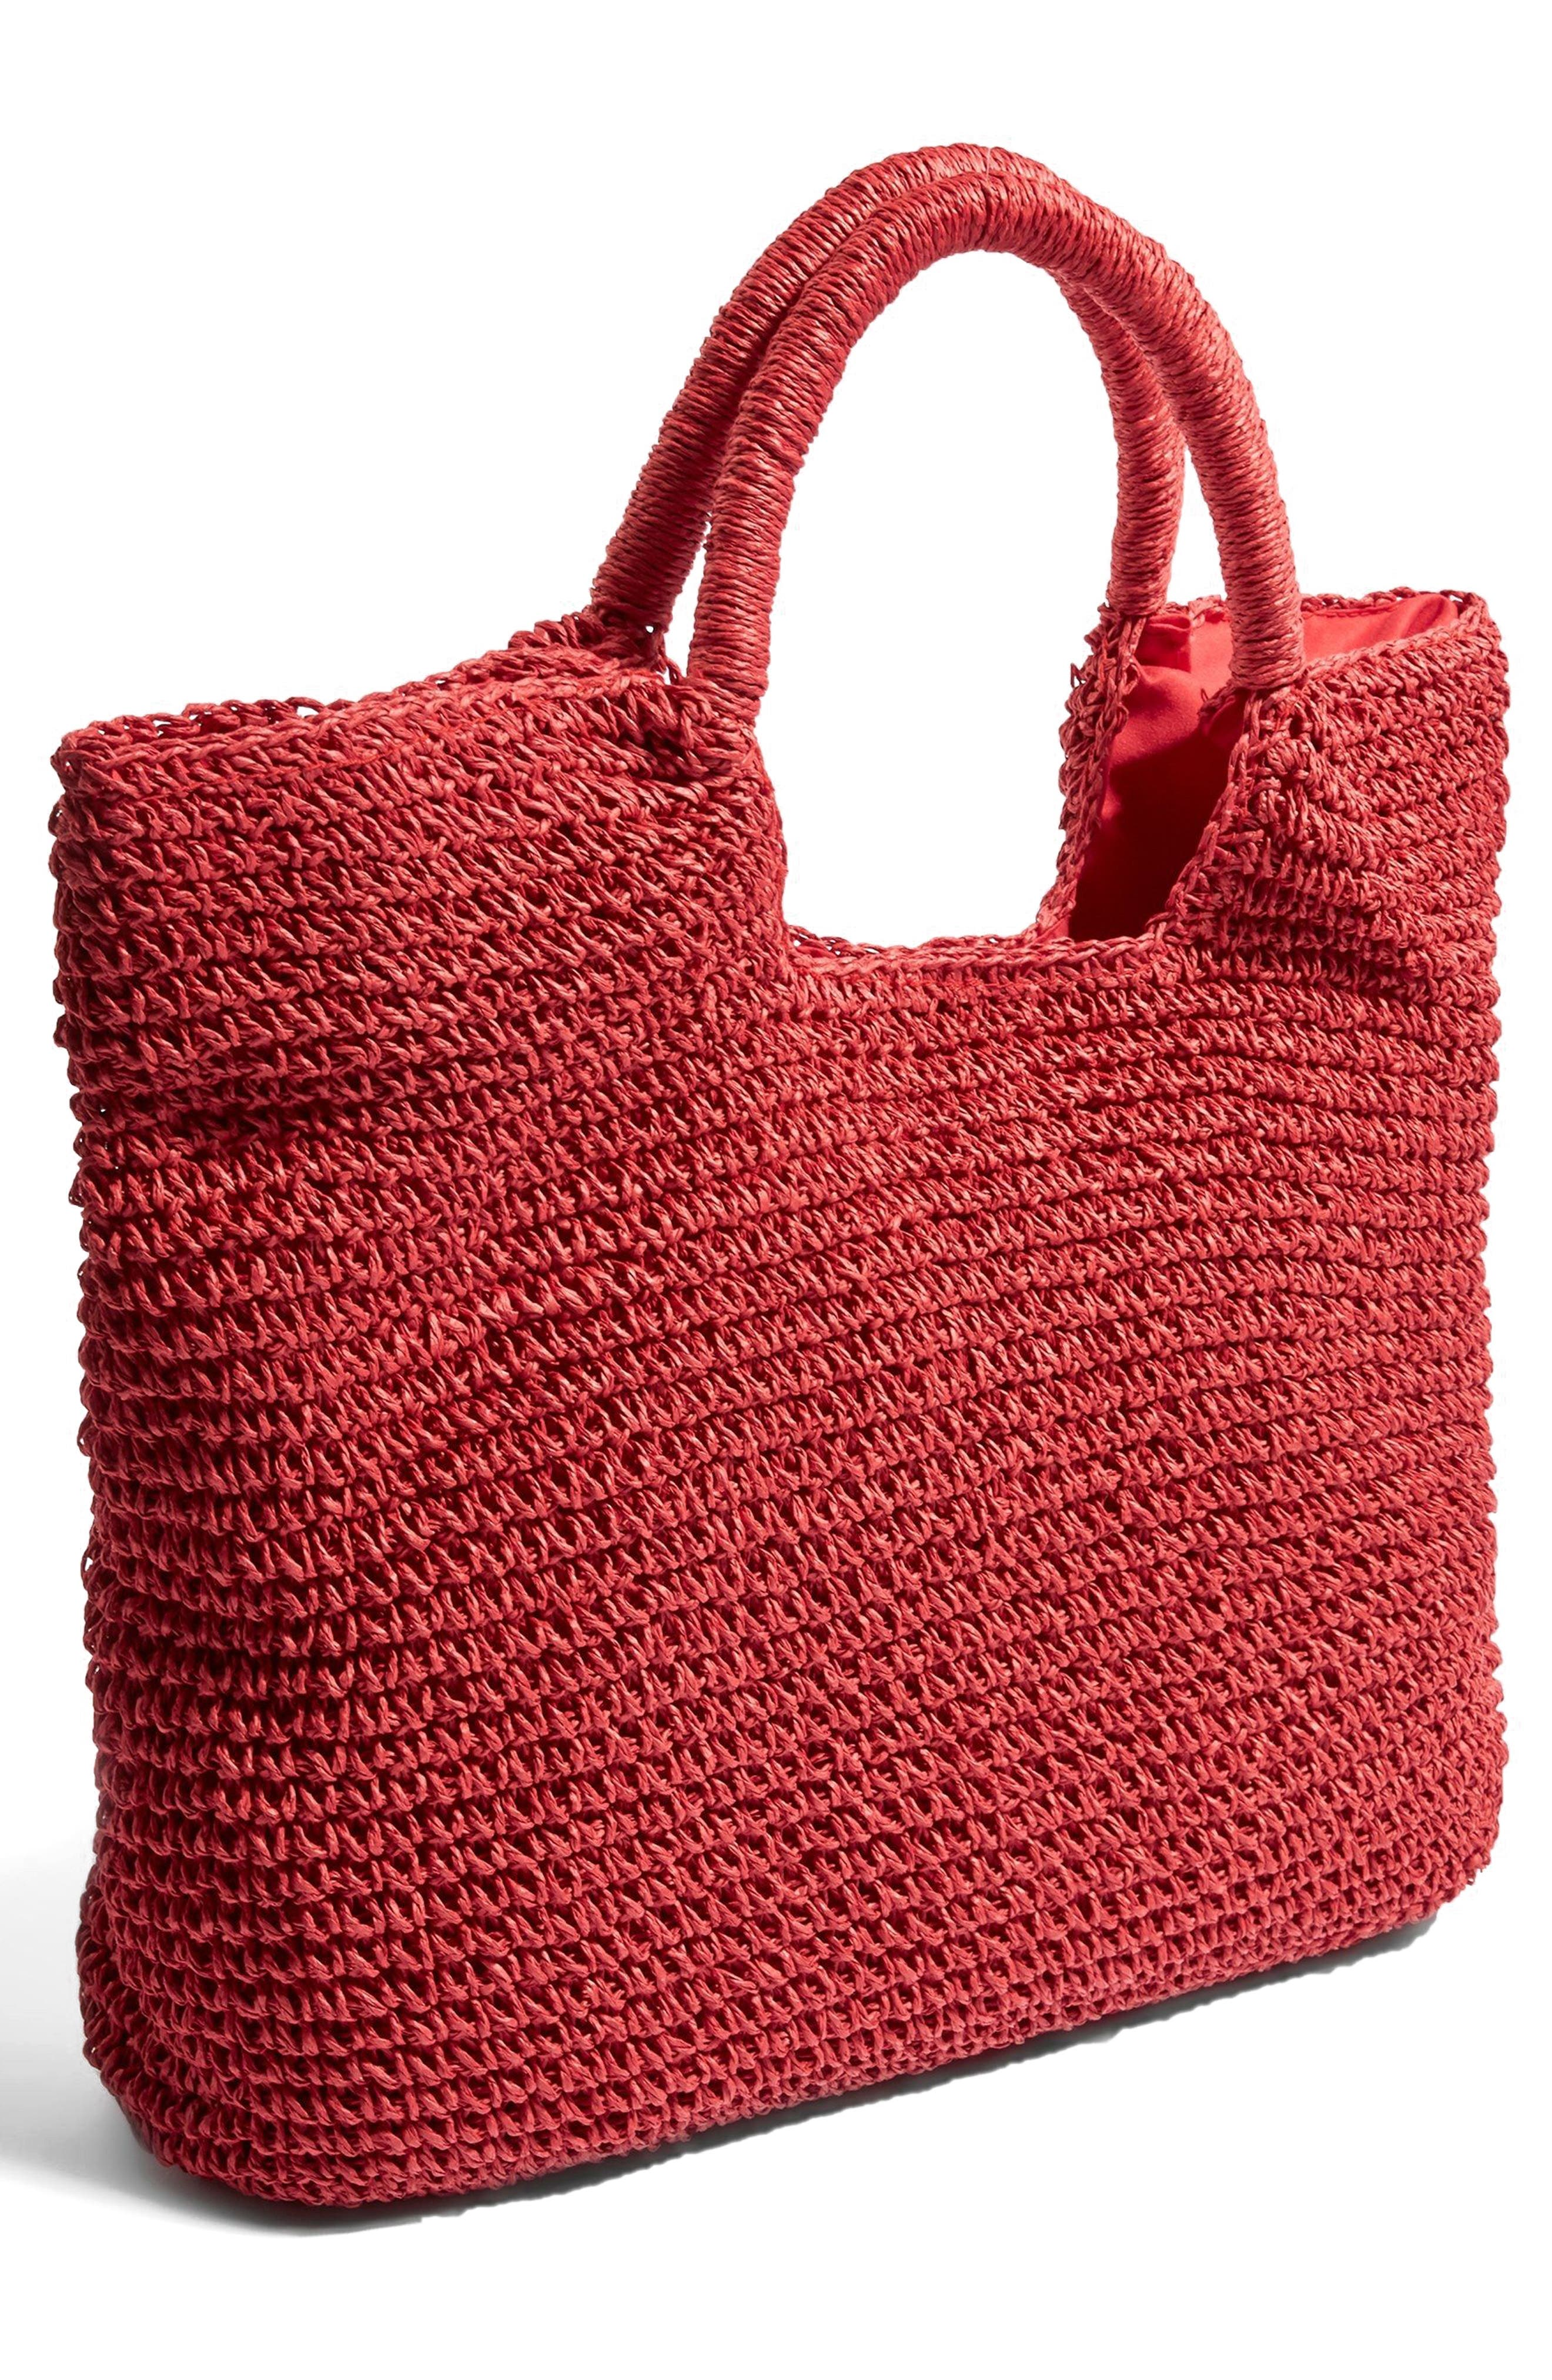 Brighty Straw Tote Bag,                             Alternate thumbnail 4, color,